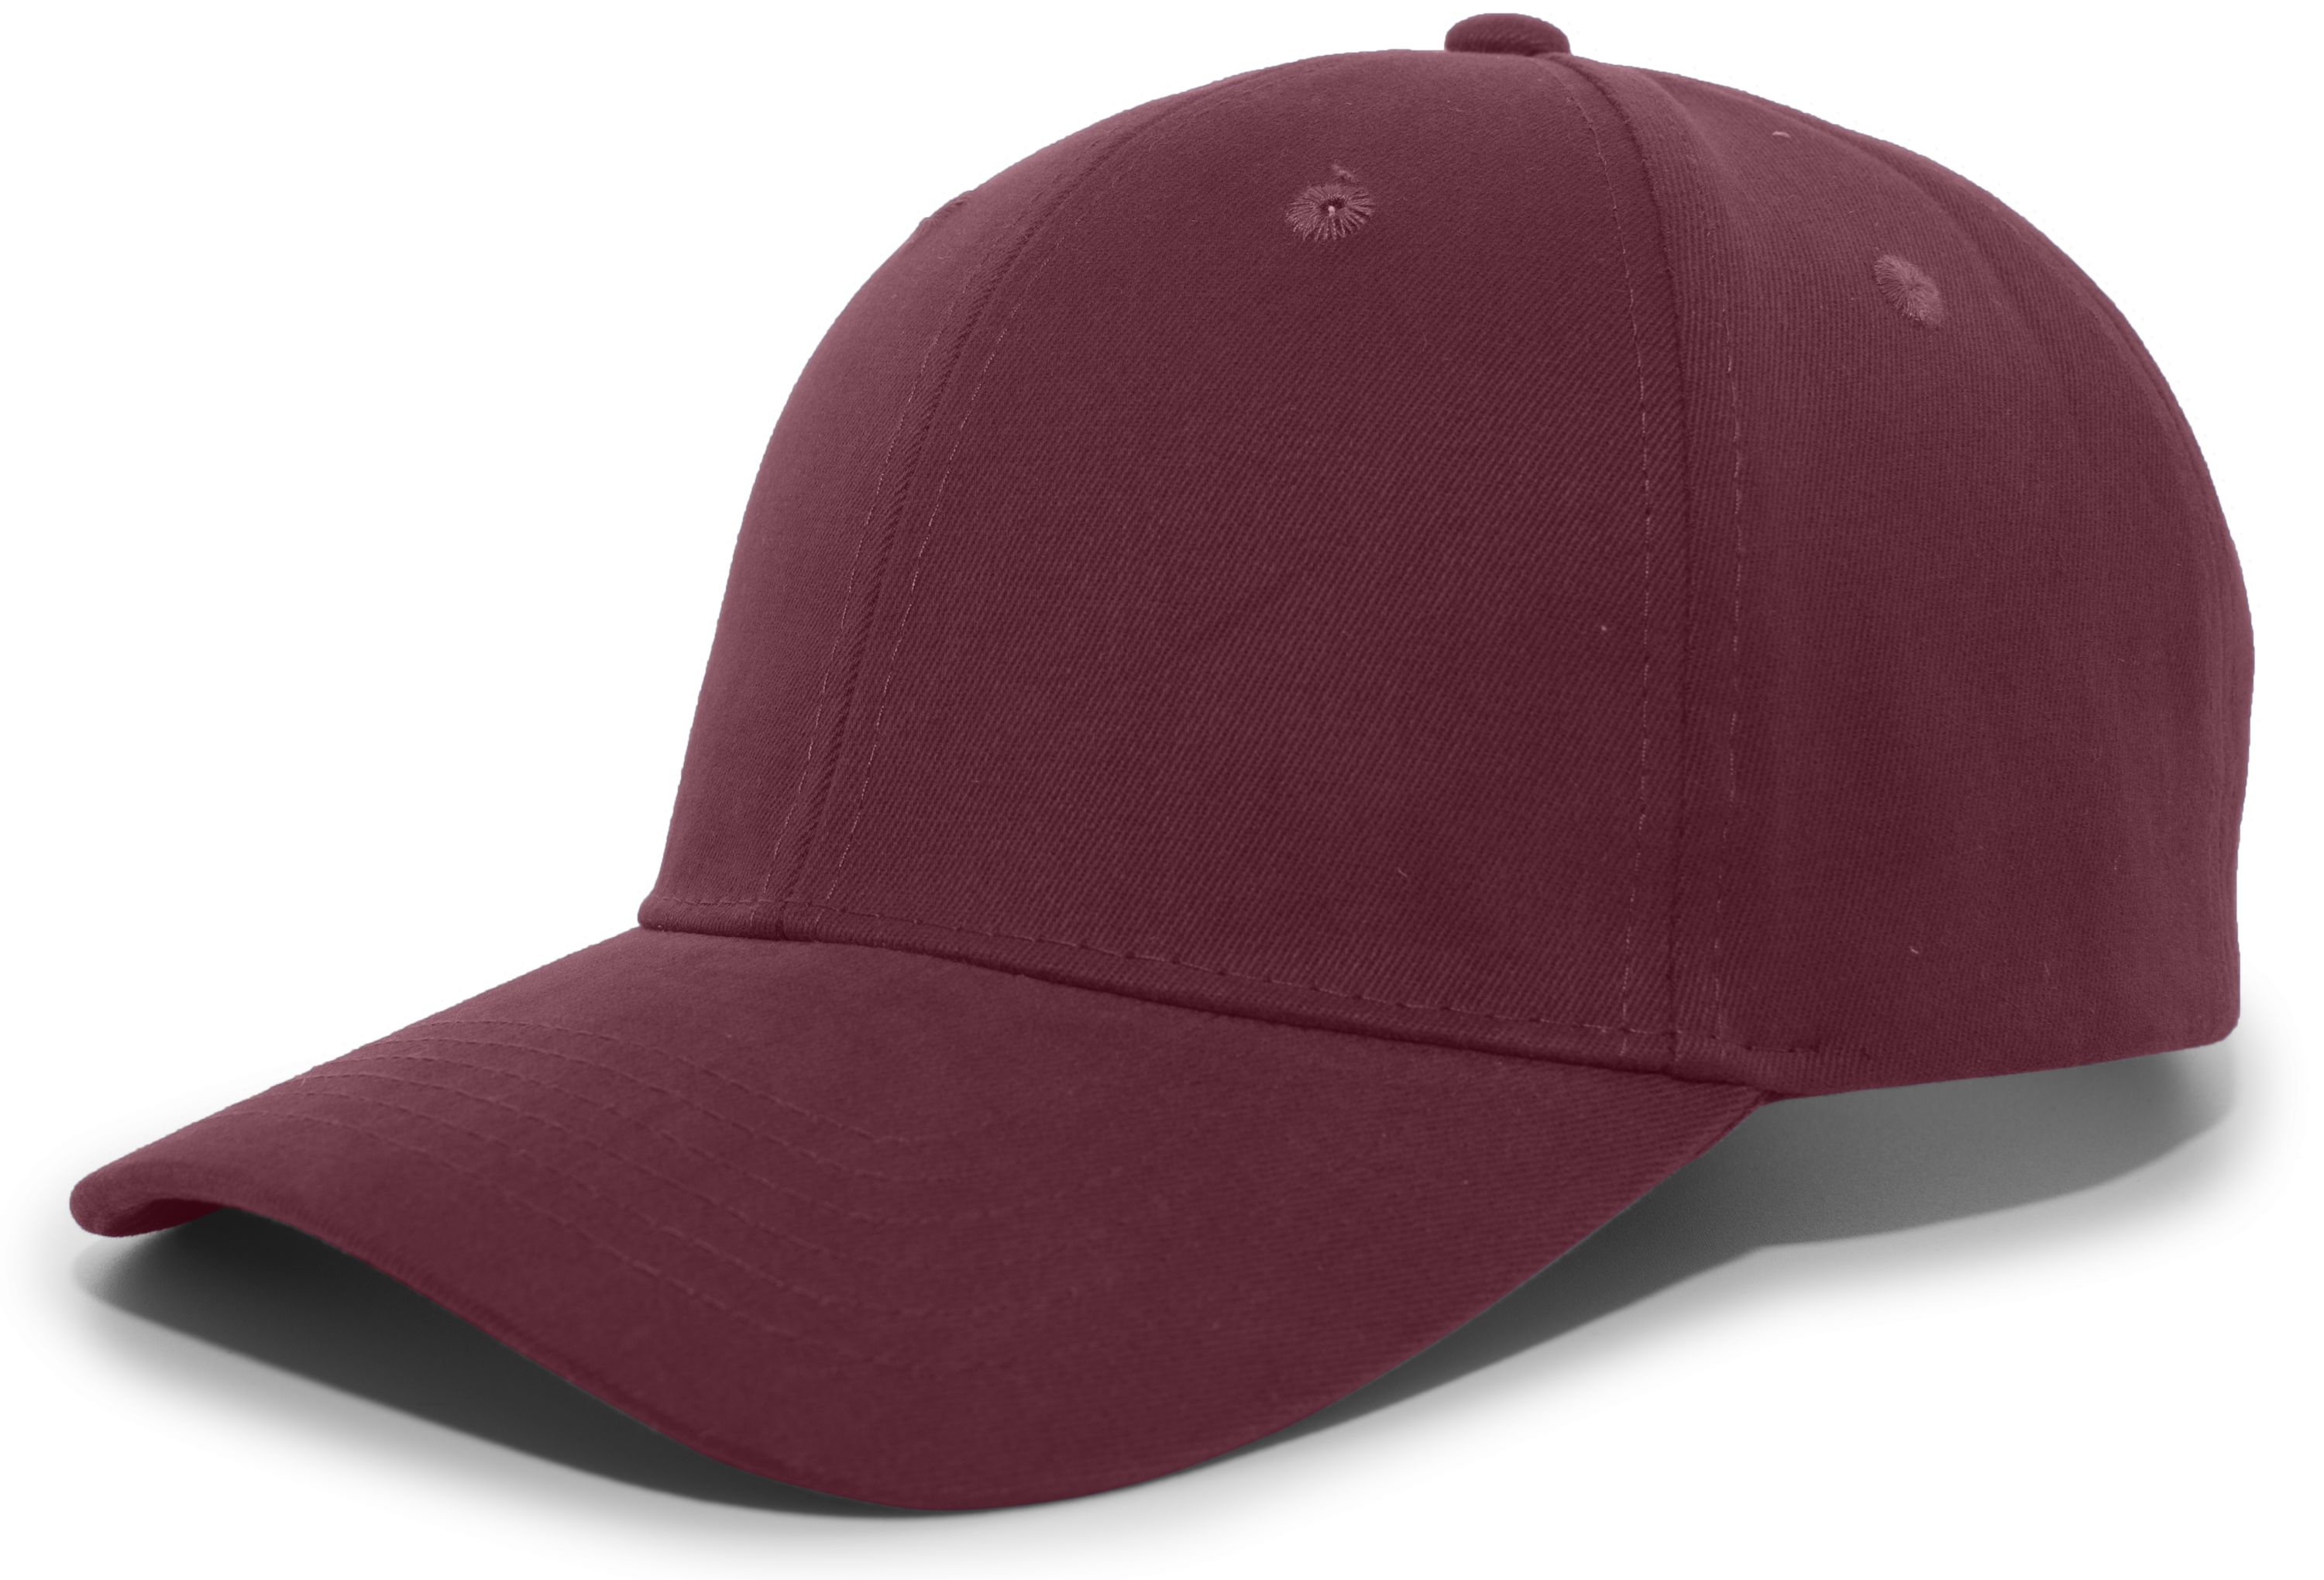 Brushed Cotton Twill Hook-And-Loop Adjustable Cap - MAROON